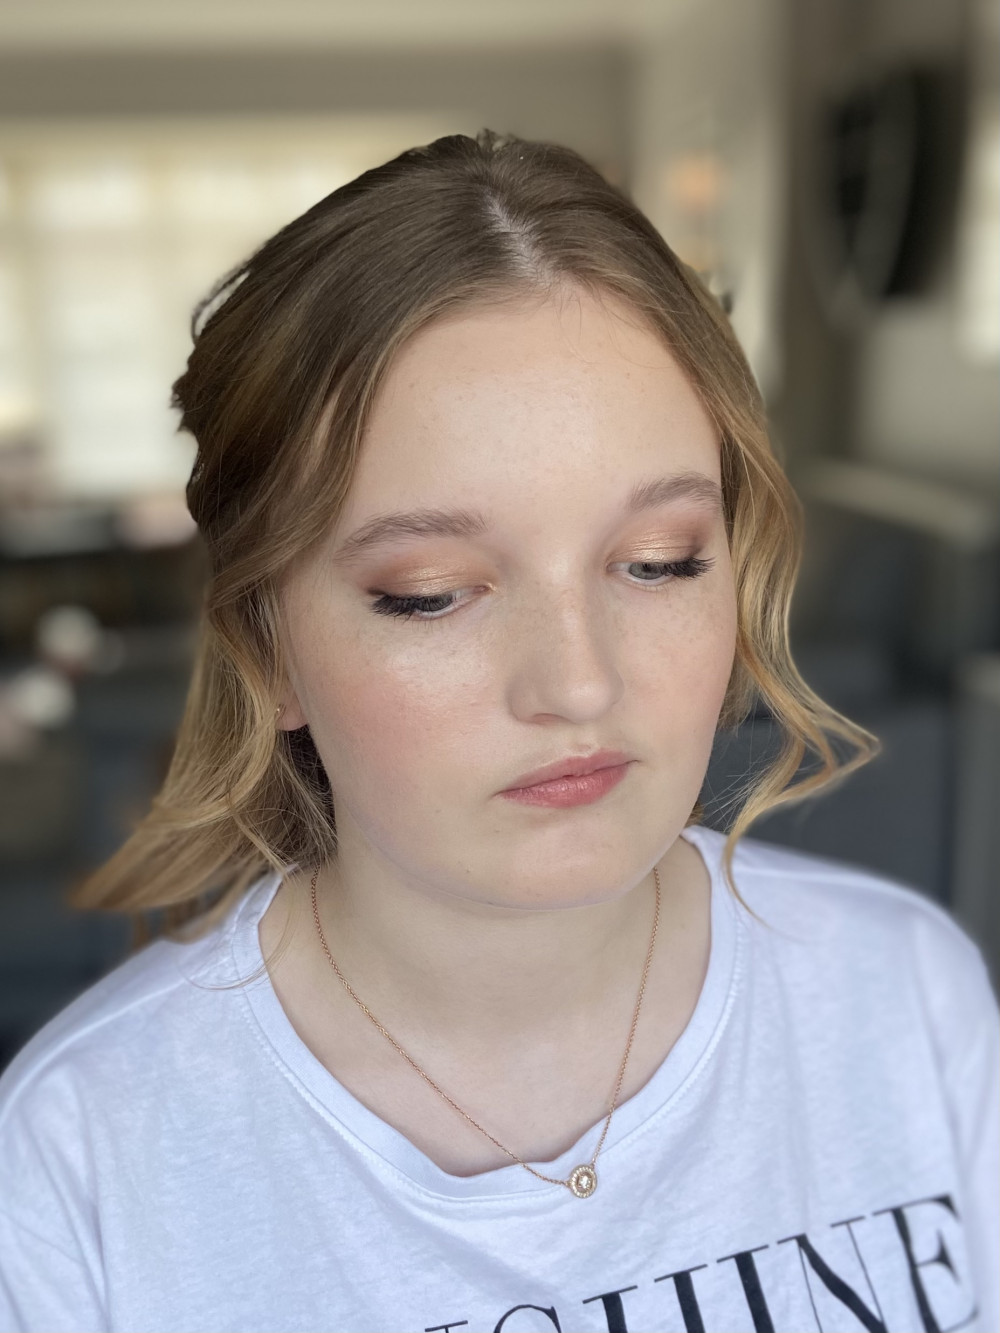 Soft prom makeup - Make Me Bridal Artist: Jessica Makeup and Hairstyling. #surreymakeupartist #hampshiremakeupartist #prommakeup #professionalmakeup #softglam